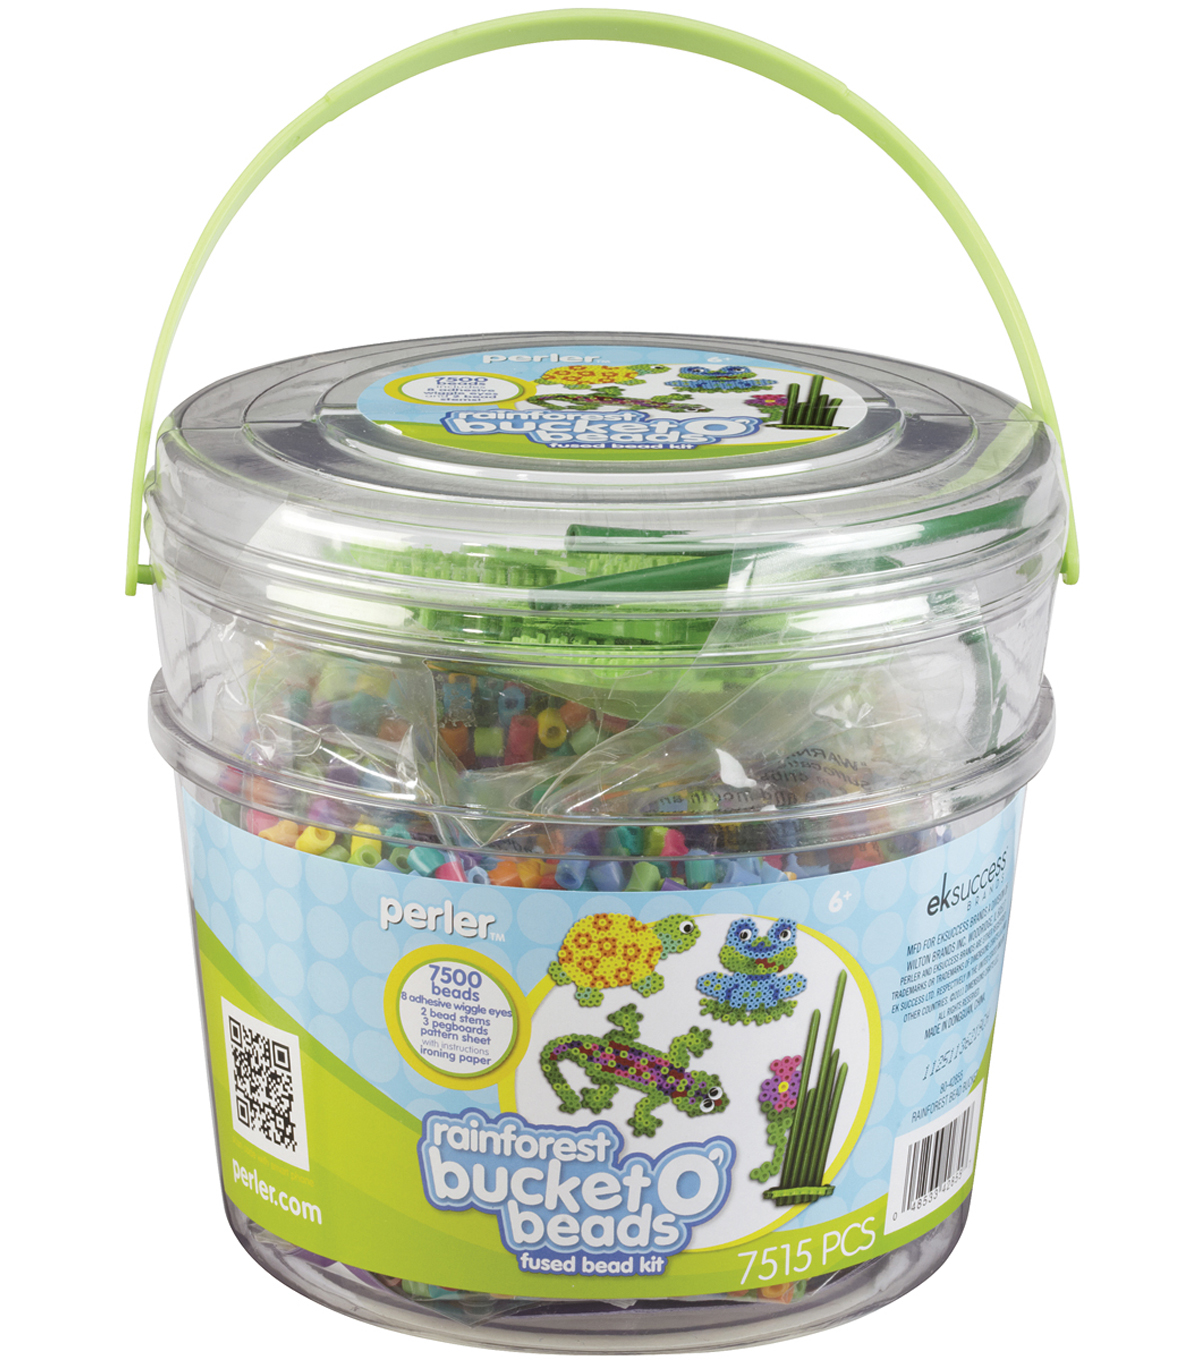 Perler Bucket O\u0027 Beads Fun Fusion Fuse Bead Kit-Rainforest